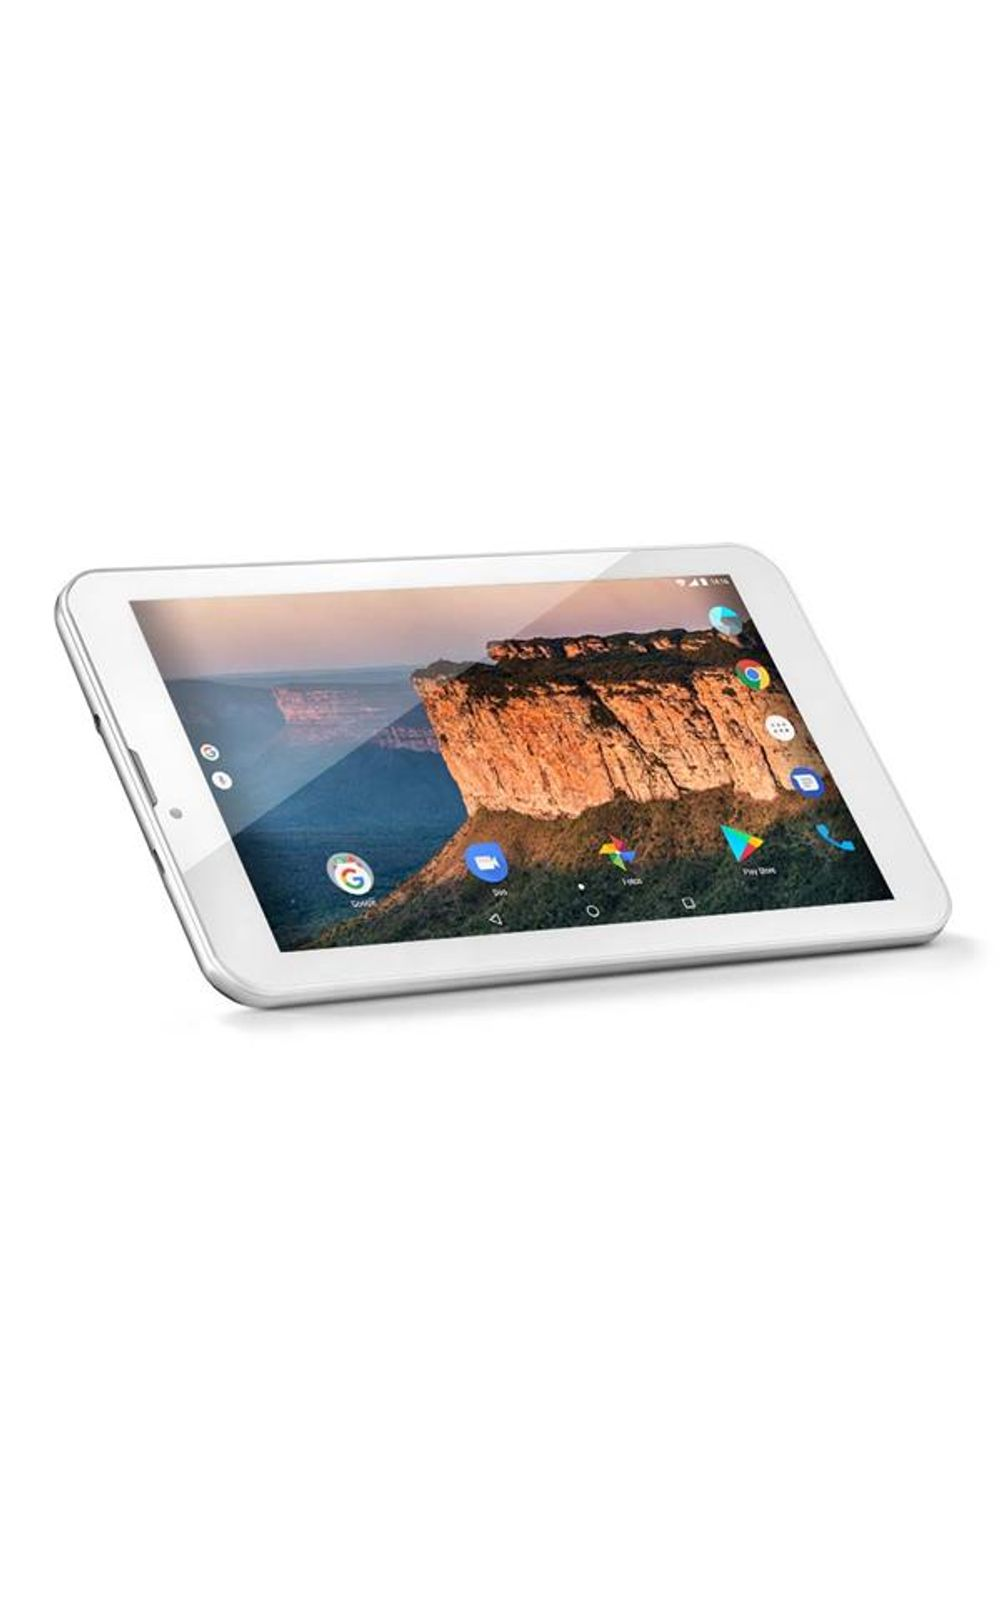 Foto 5 - Tablet Multilaser Prata M9 3G Memoria 8GB Dual Chip - NB284